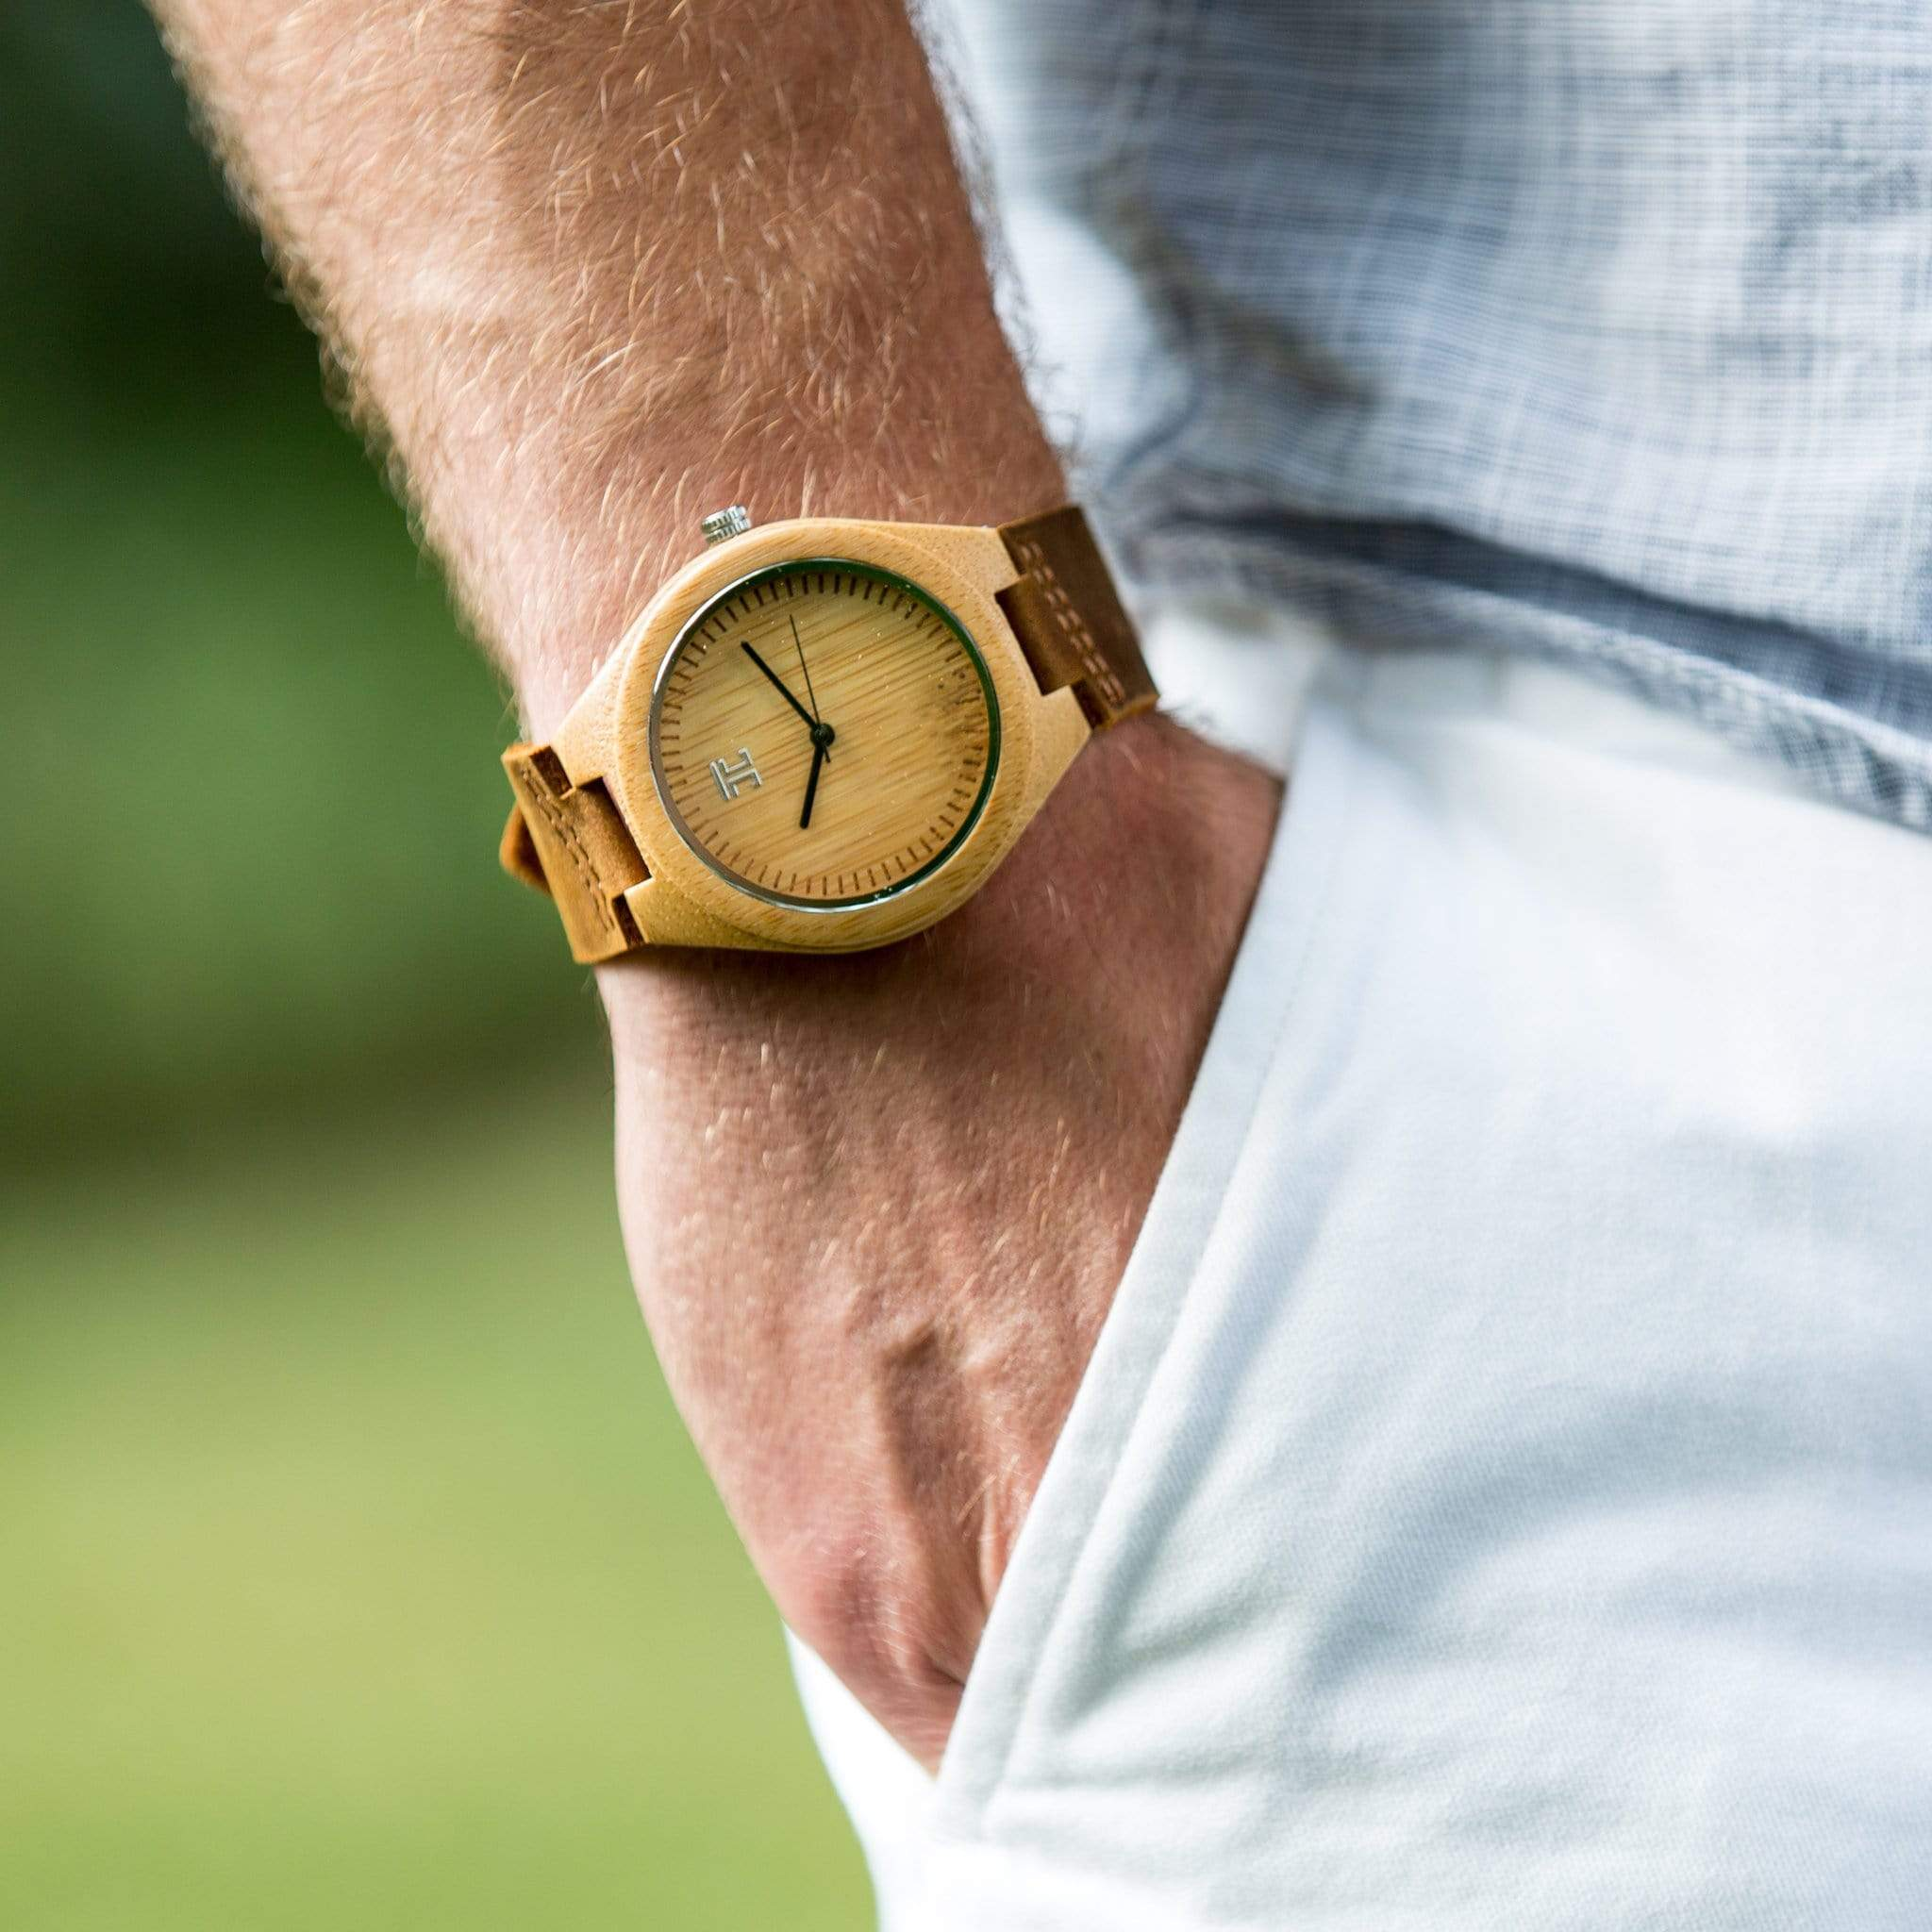 Wooden Watch | Bamboo with Genuine Leather Strap - Wooden Watches and Sunglasses - Joycoast